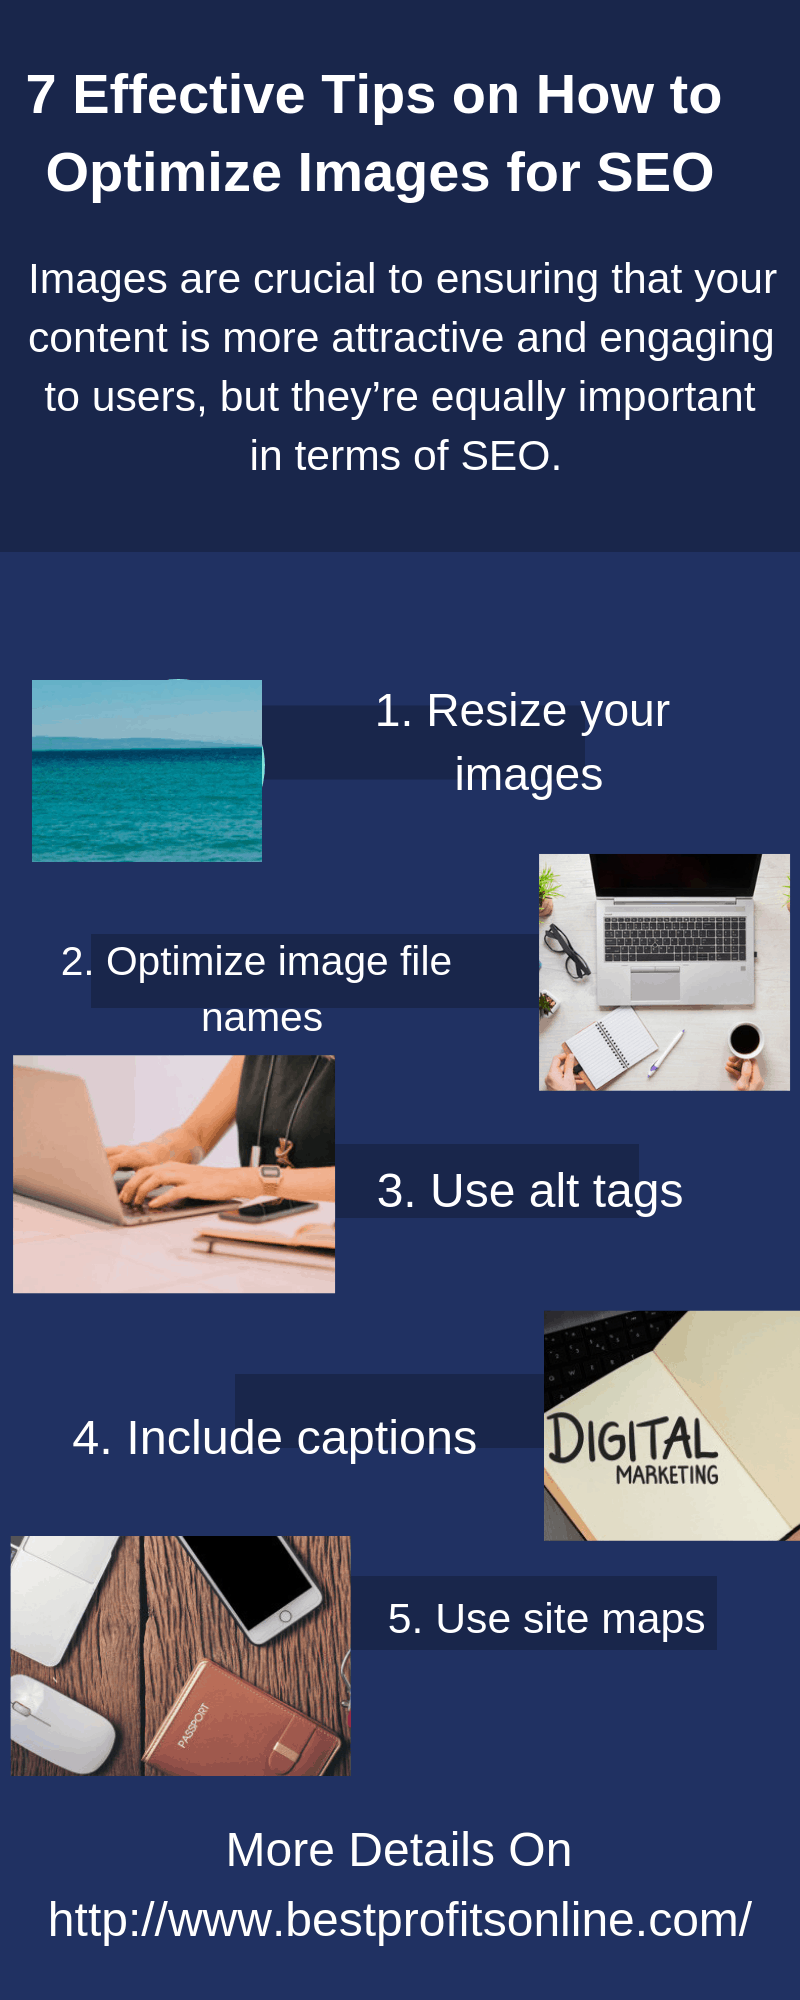 7 Effective Tips on How to Optimize Images for SEO [Infographic]